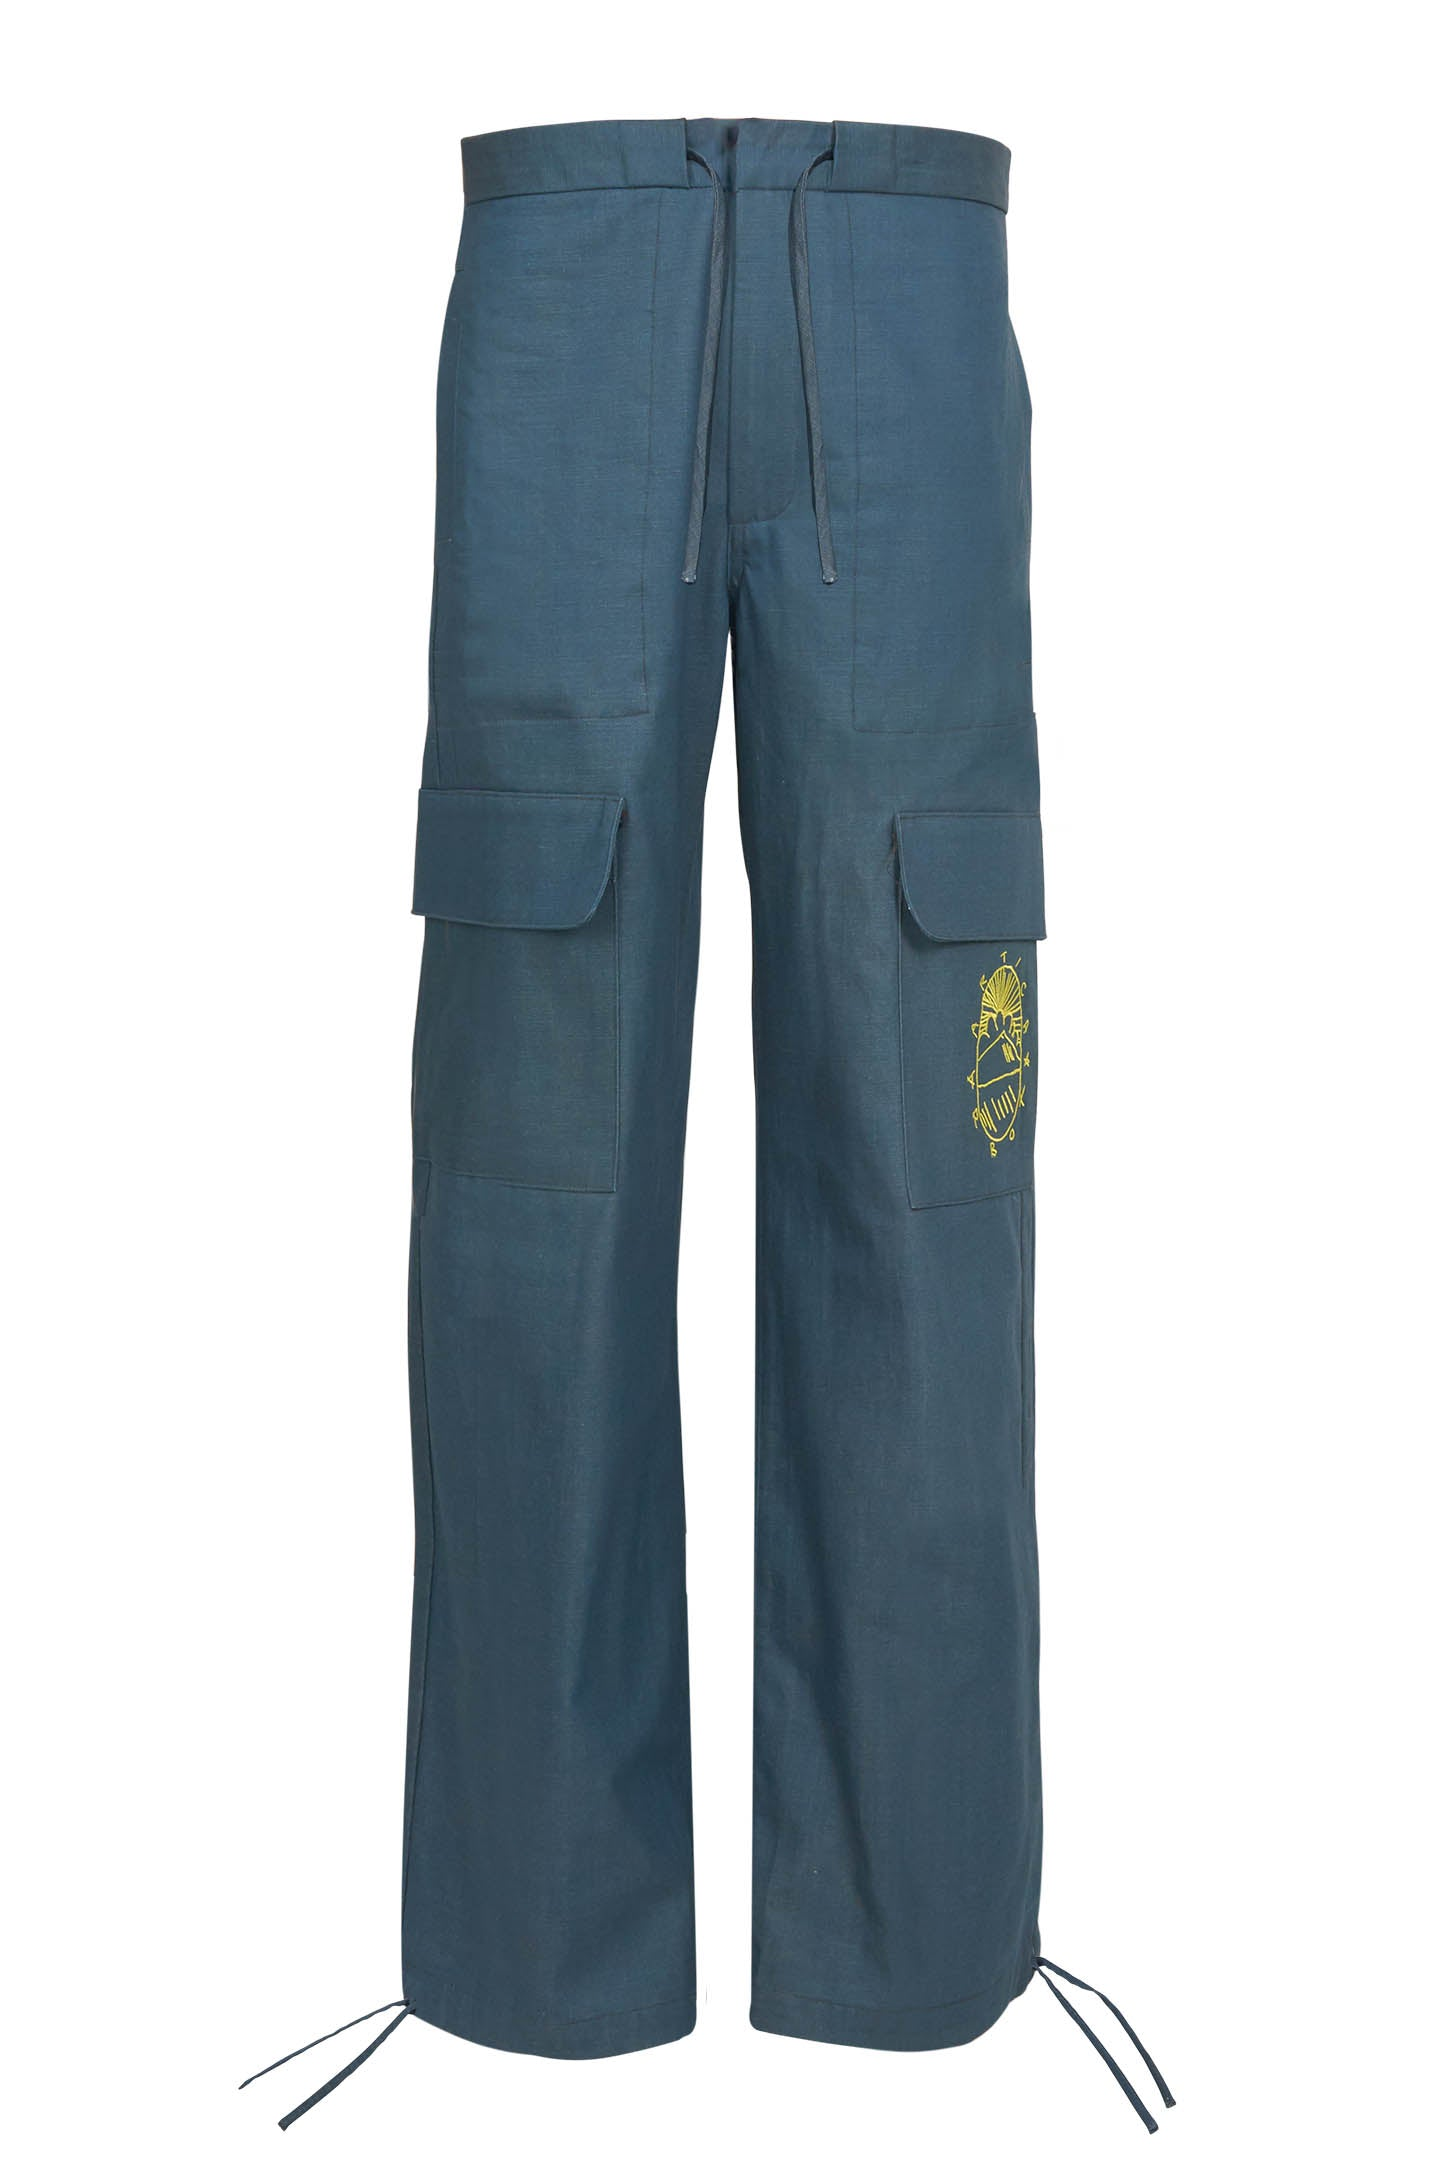 Cotton Twill Cargo Pants - BLUE